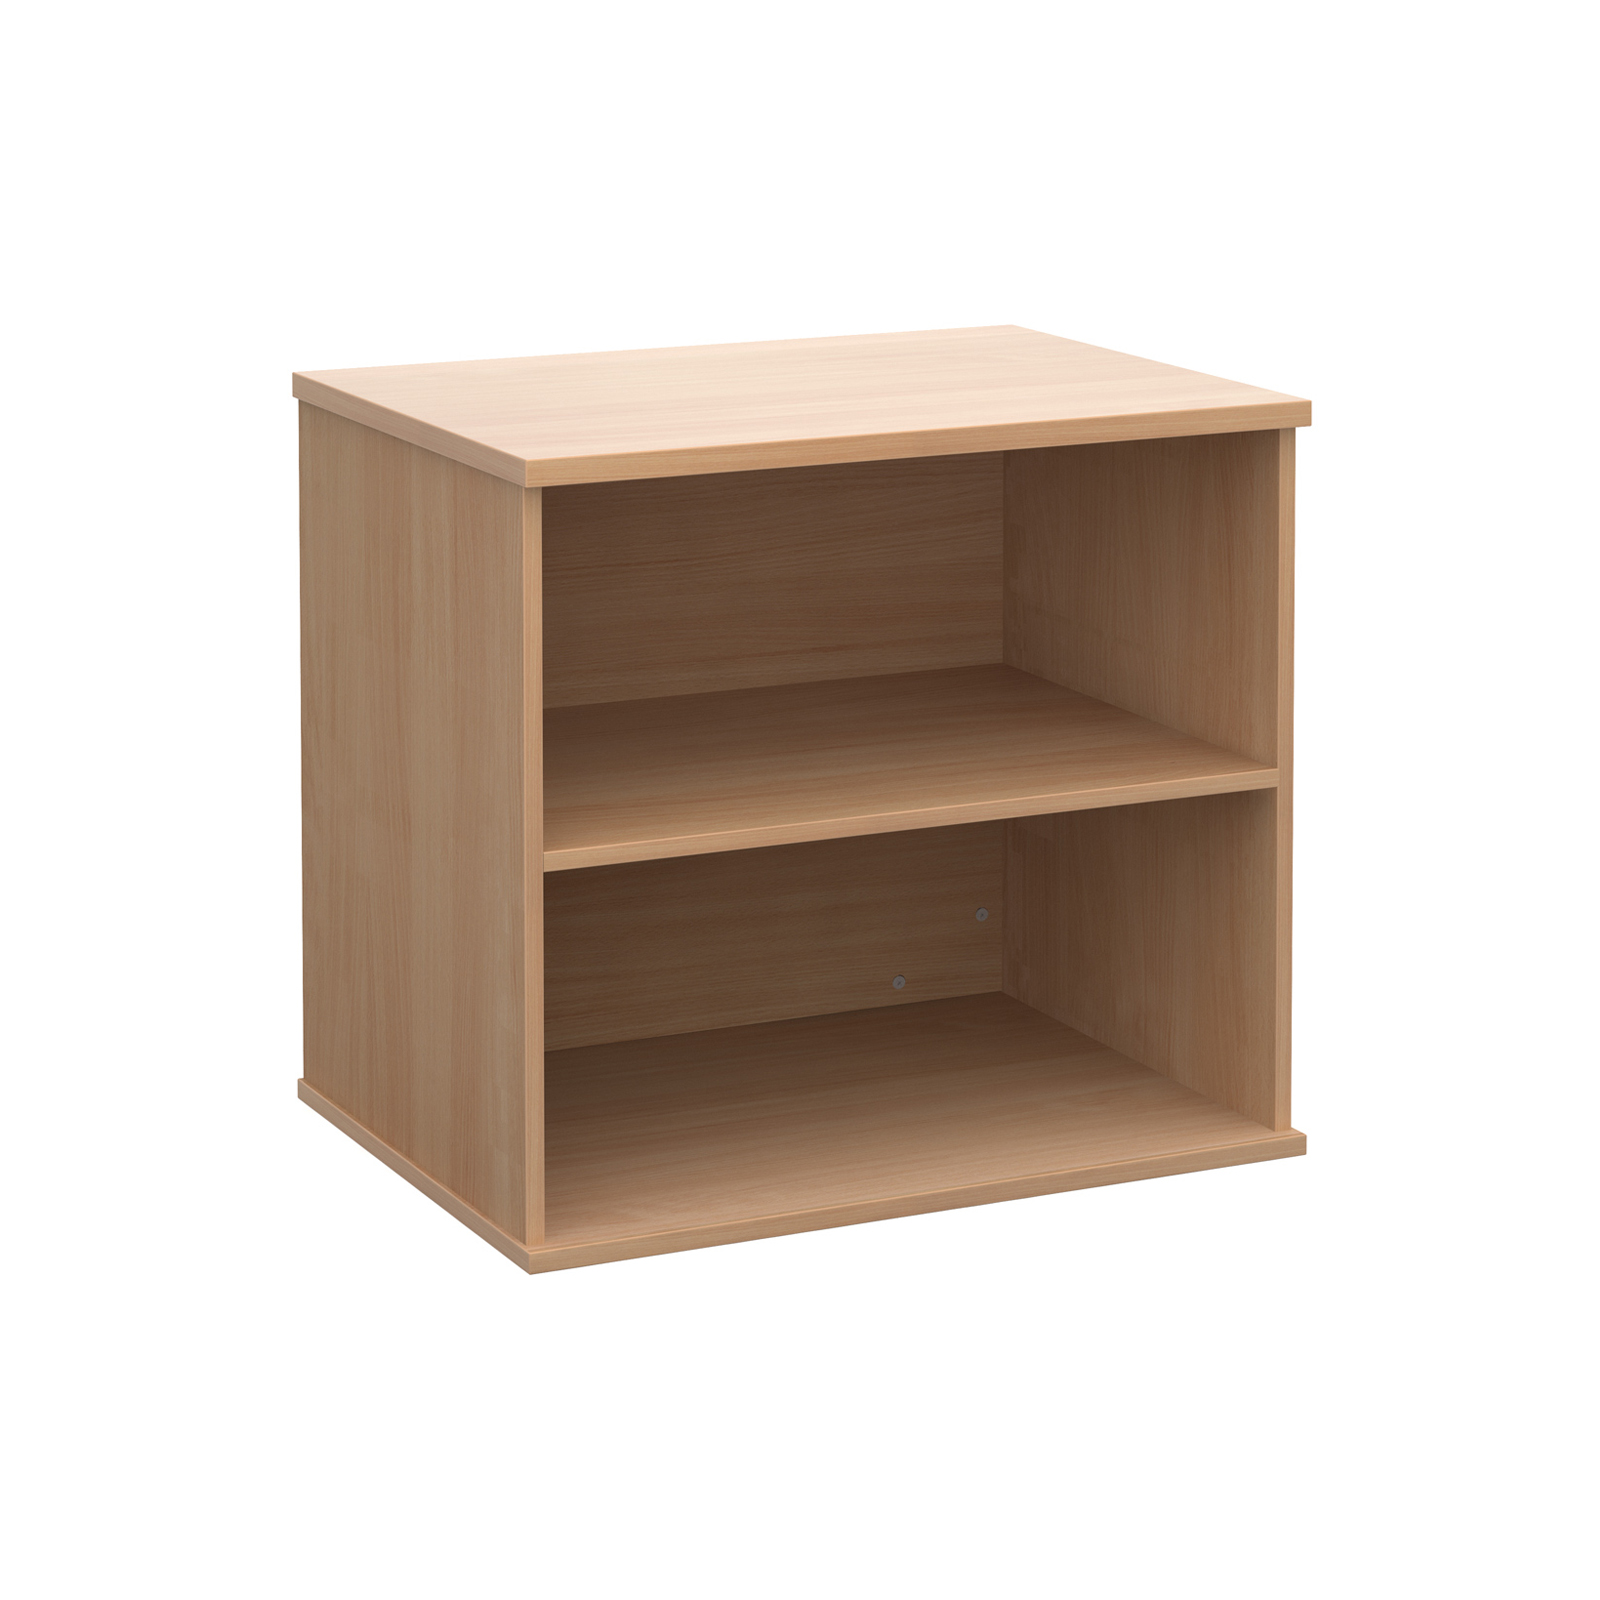 Deluxe desk high bookcase